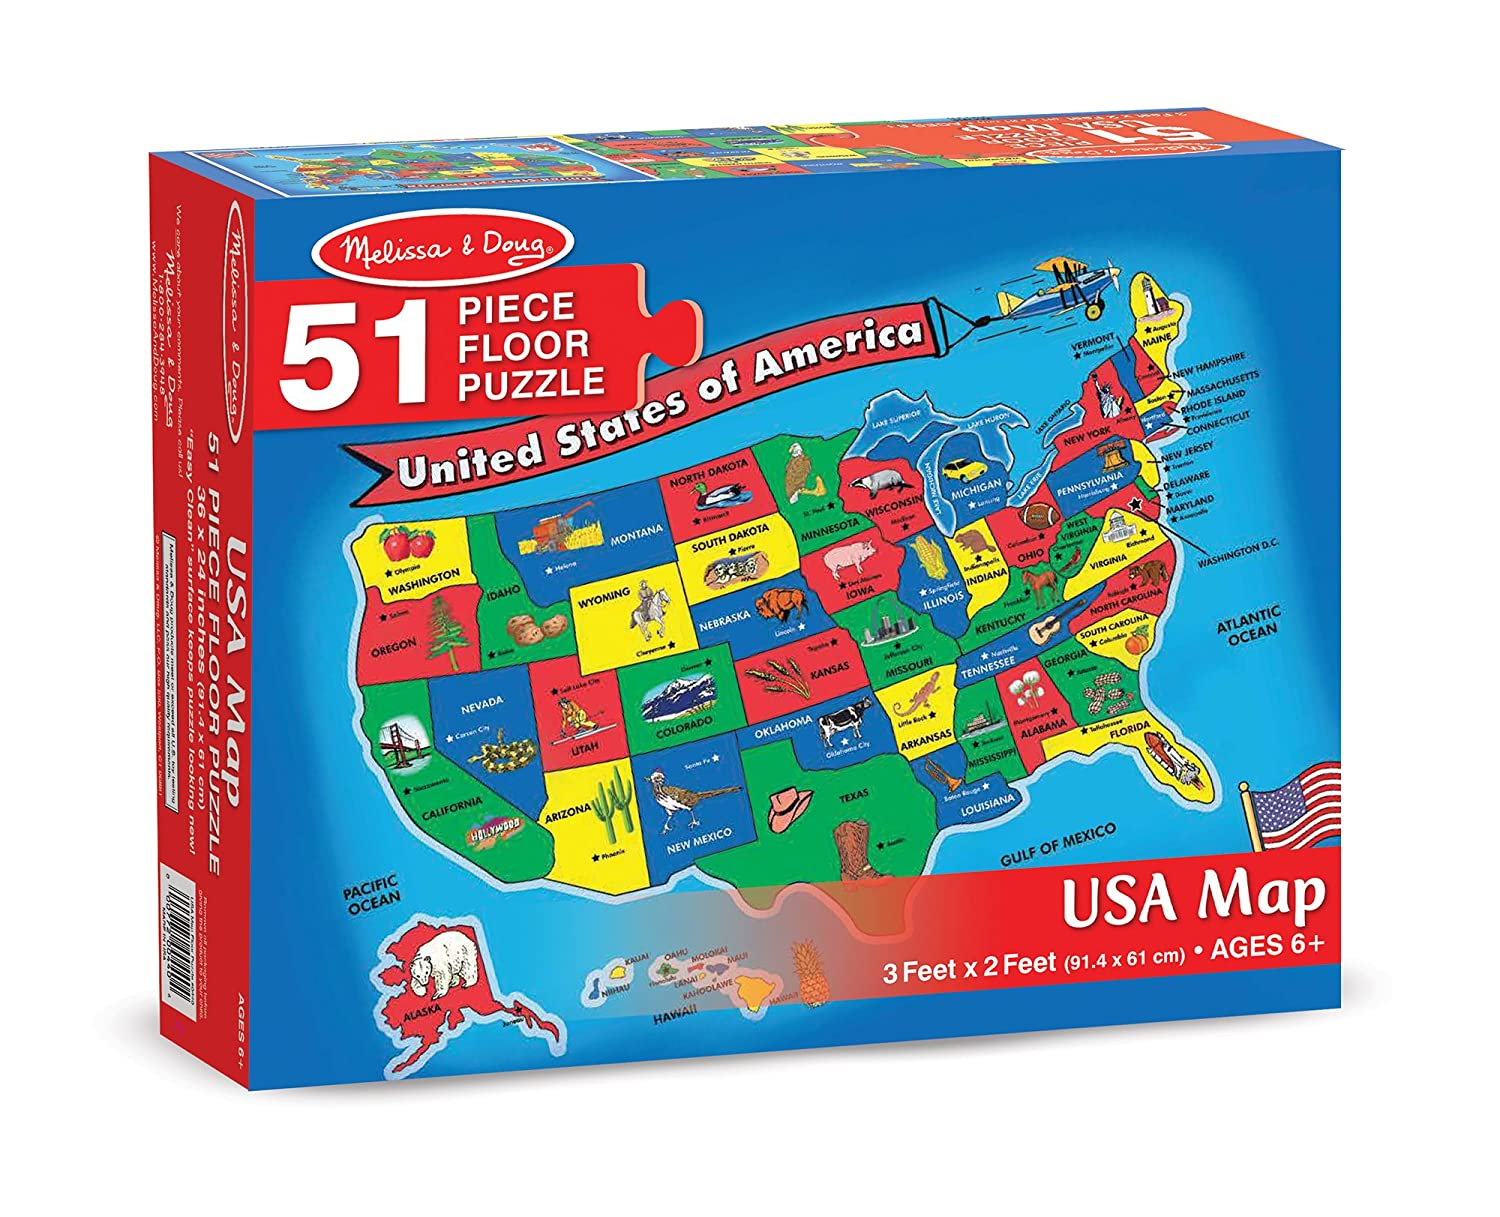 Amazon Com Melissa Doug Usa Map Floor Puzzle 51 Pcs 2 X 3 Feet Melissa Doug Toys Games